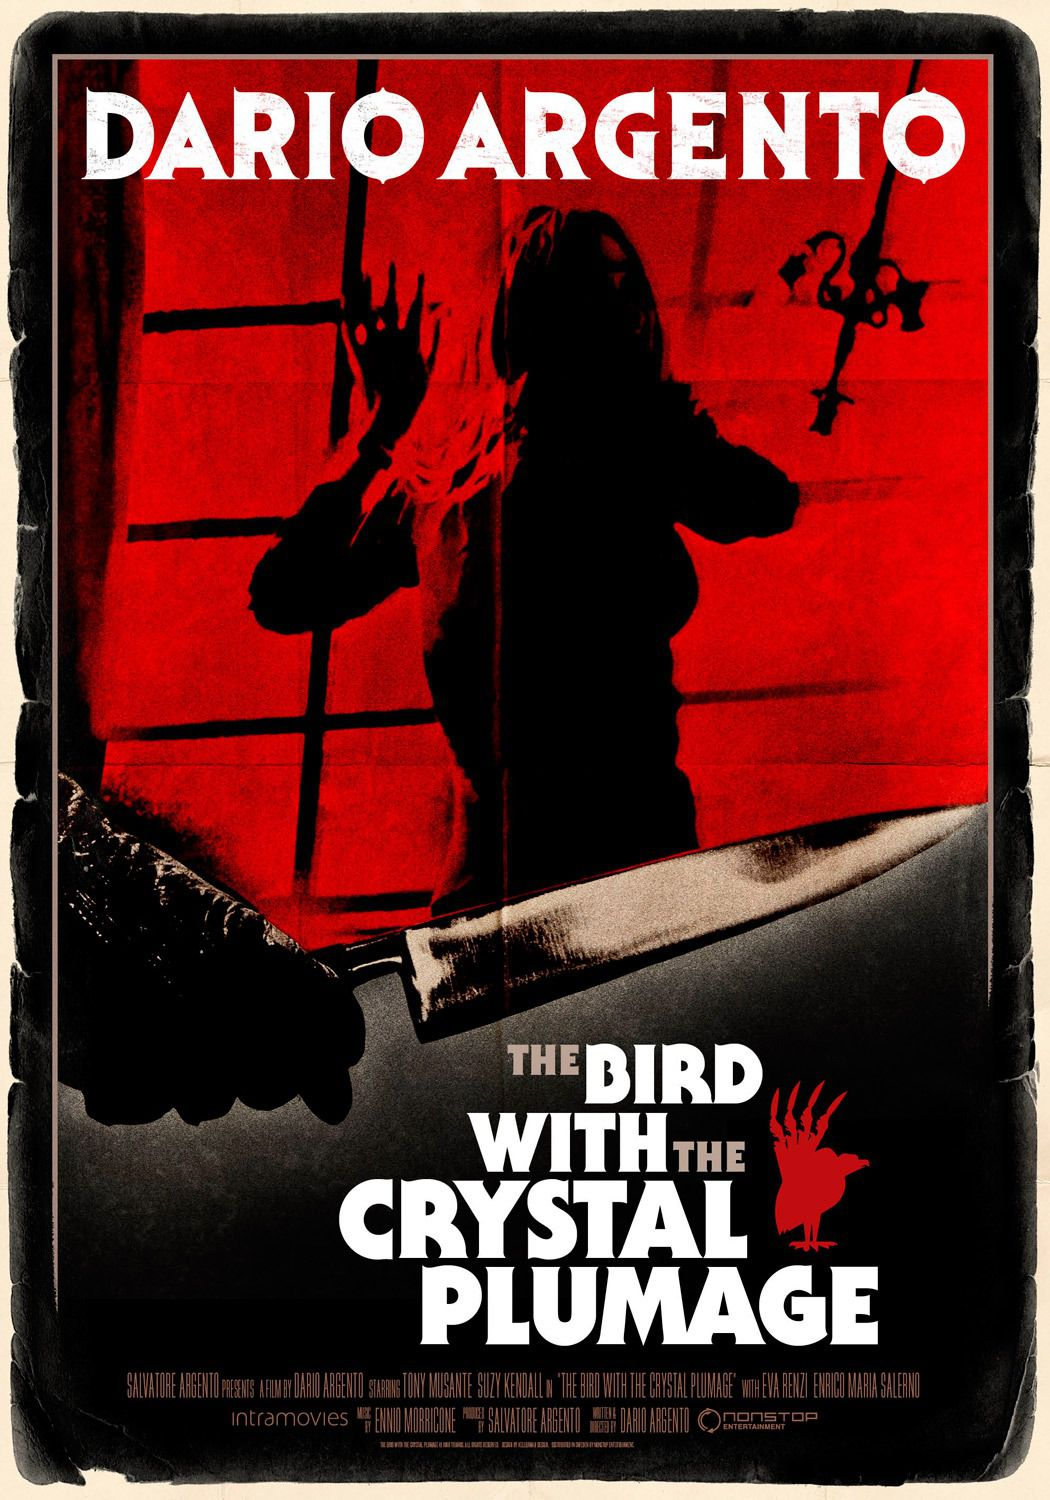 L'Uccello dalle Piume di Cristallo - The Bird with the Crystal Plumage - Dario Argento - horror film poster